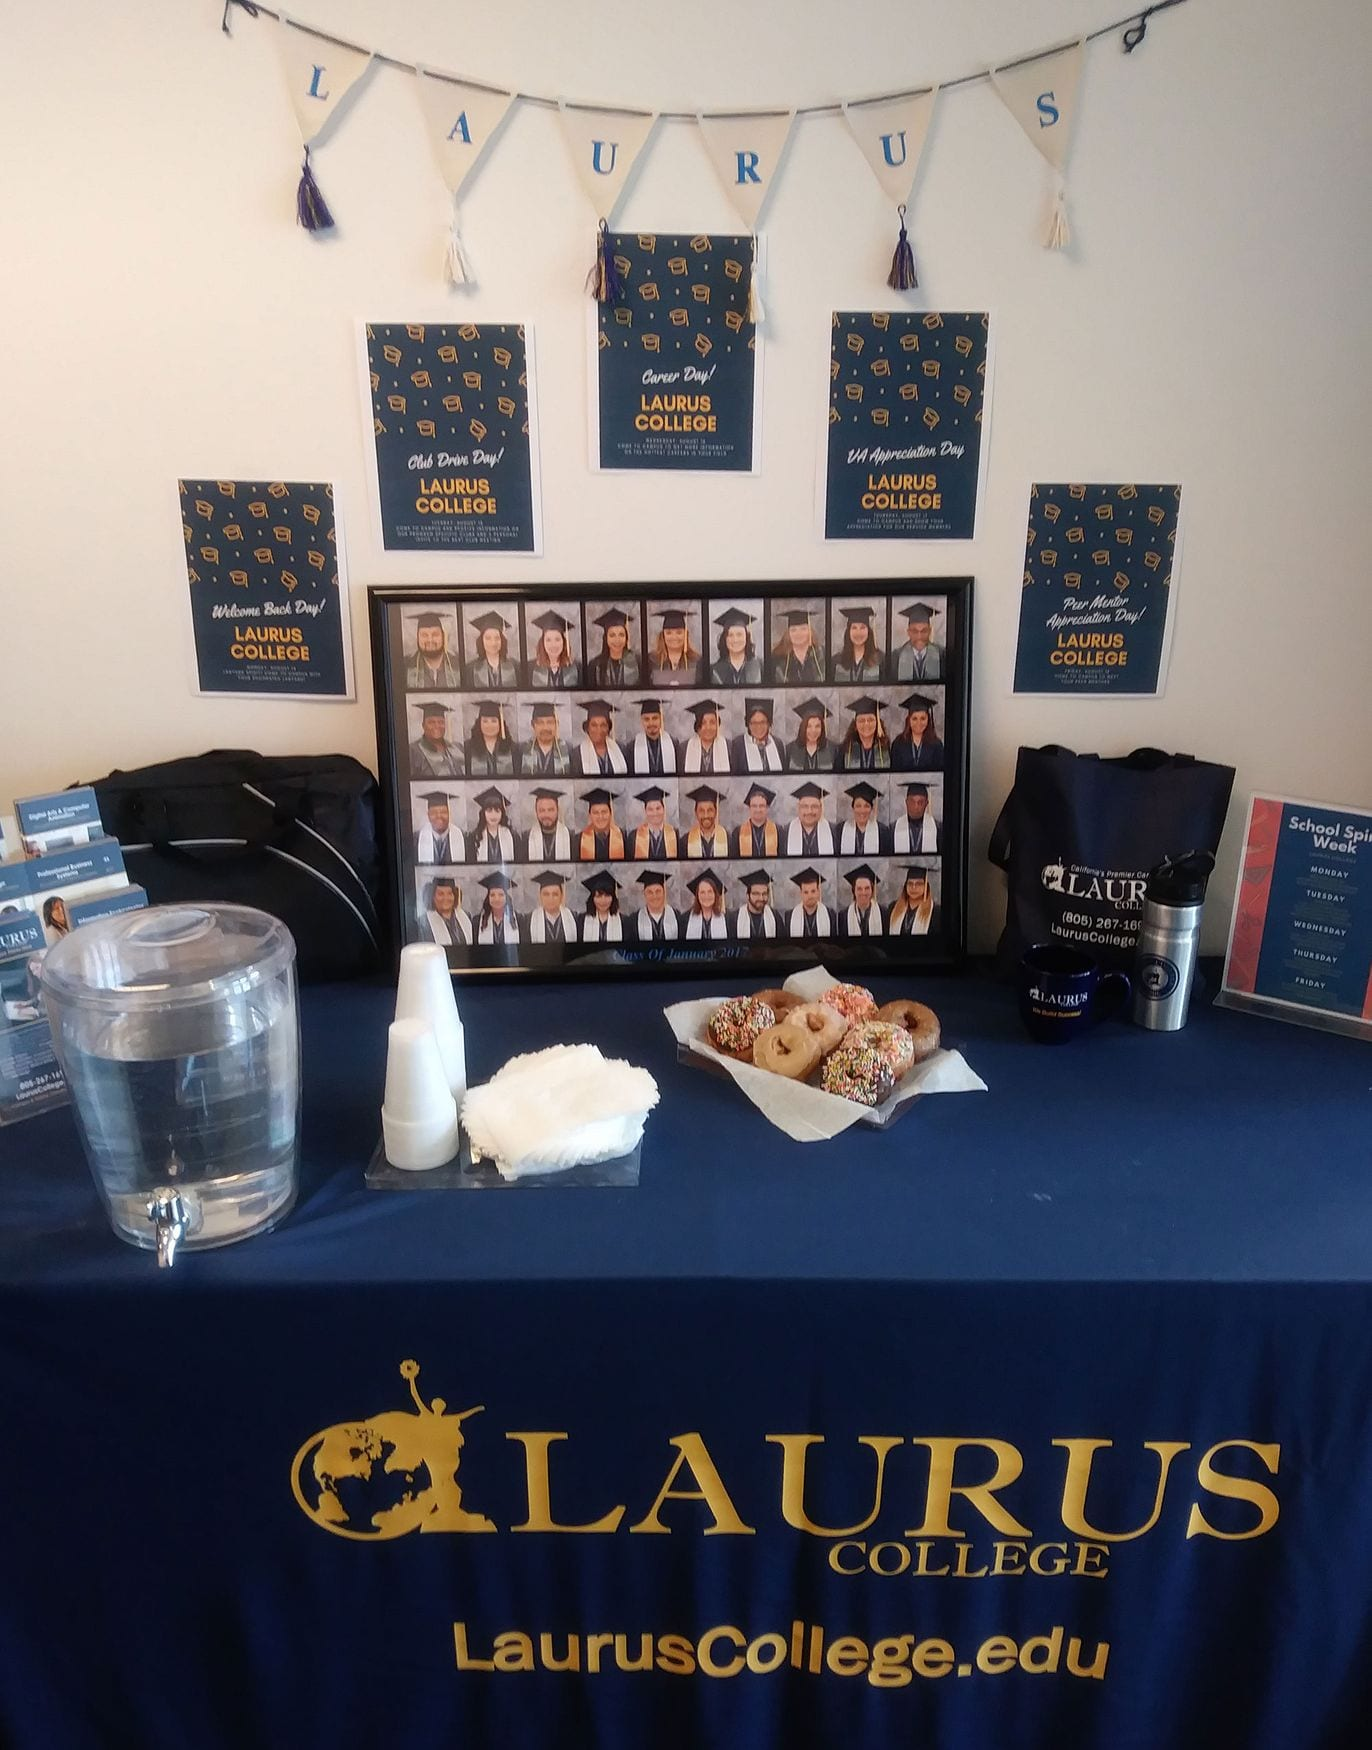 Laurus College Blog – School Spirit Week at Laurus College